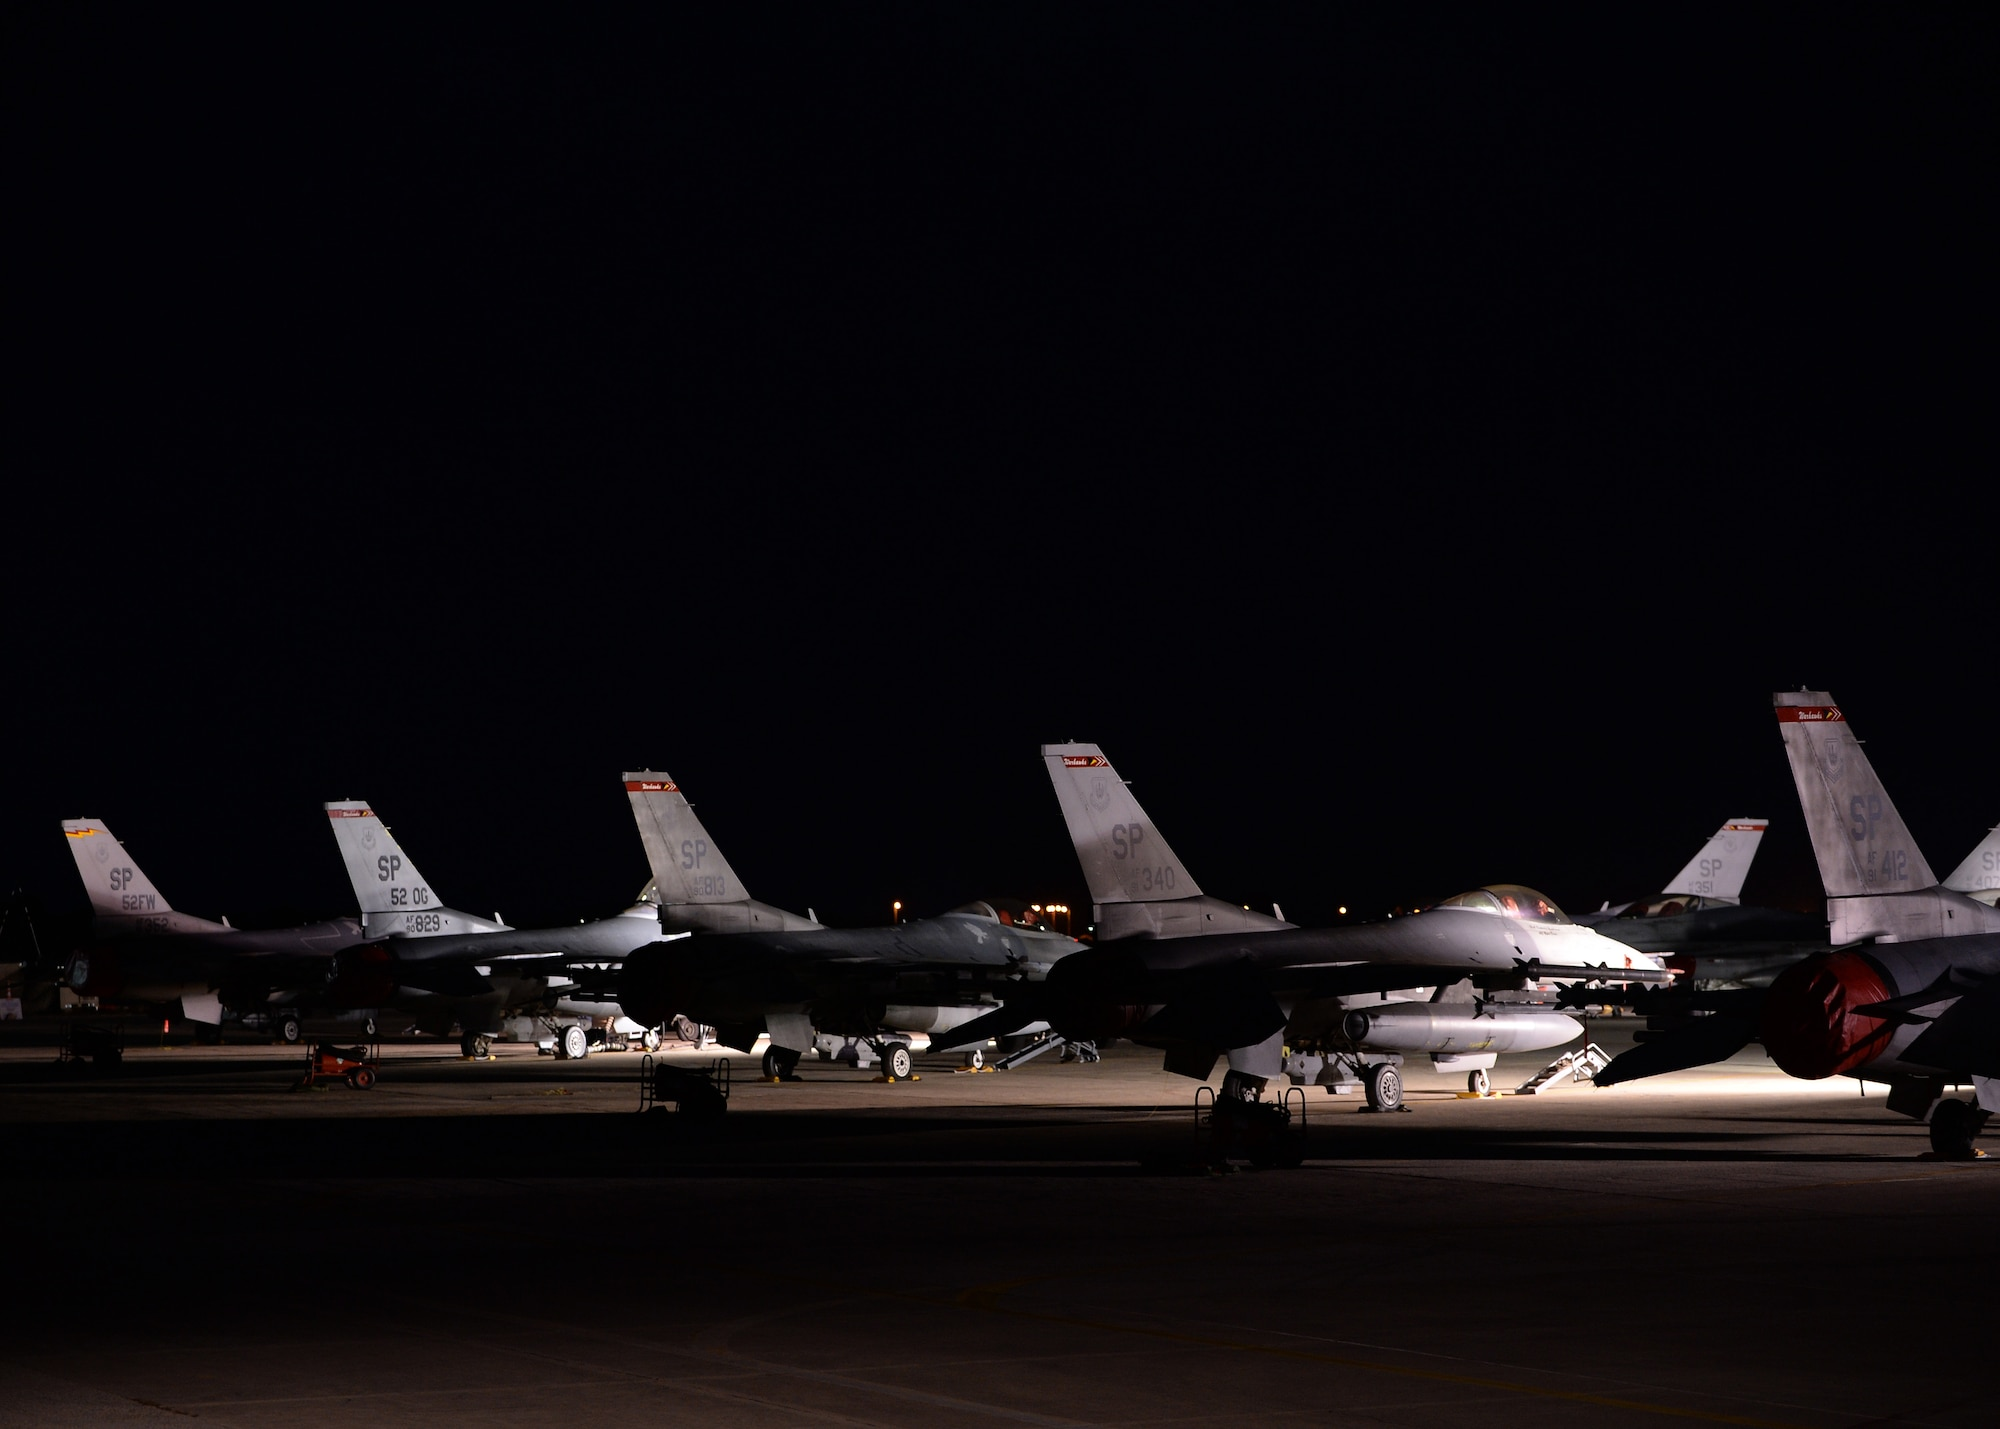 A  F-16 Fighting Falcon aircraft taxis to the flightline during a two-week training event between Greece and the U.S. Aug. 18, 2014, at Souda Bay, Greece. The training allows the NATO partners to fly together during peacetime to strengthen their joint military capability. The F-16 is from the 480th Fighter Squadron. (U.S. Air Force photo/Staff Sgt. Daryl Knee)